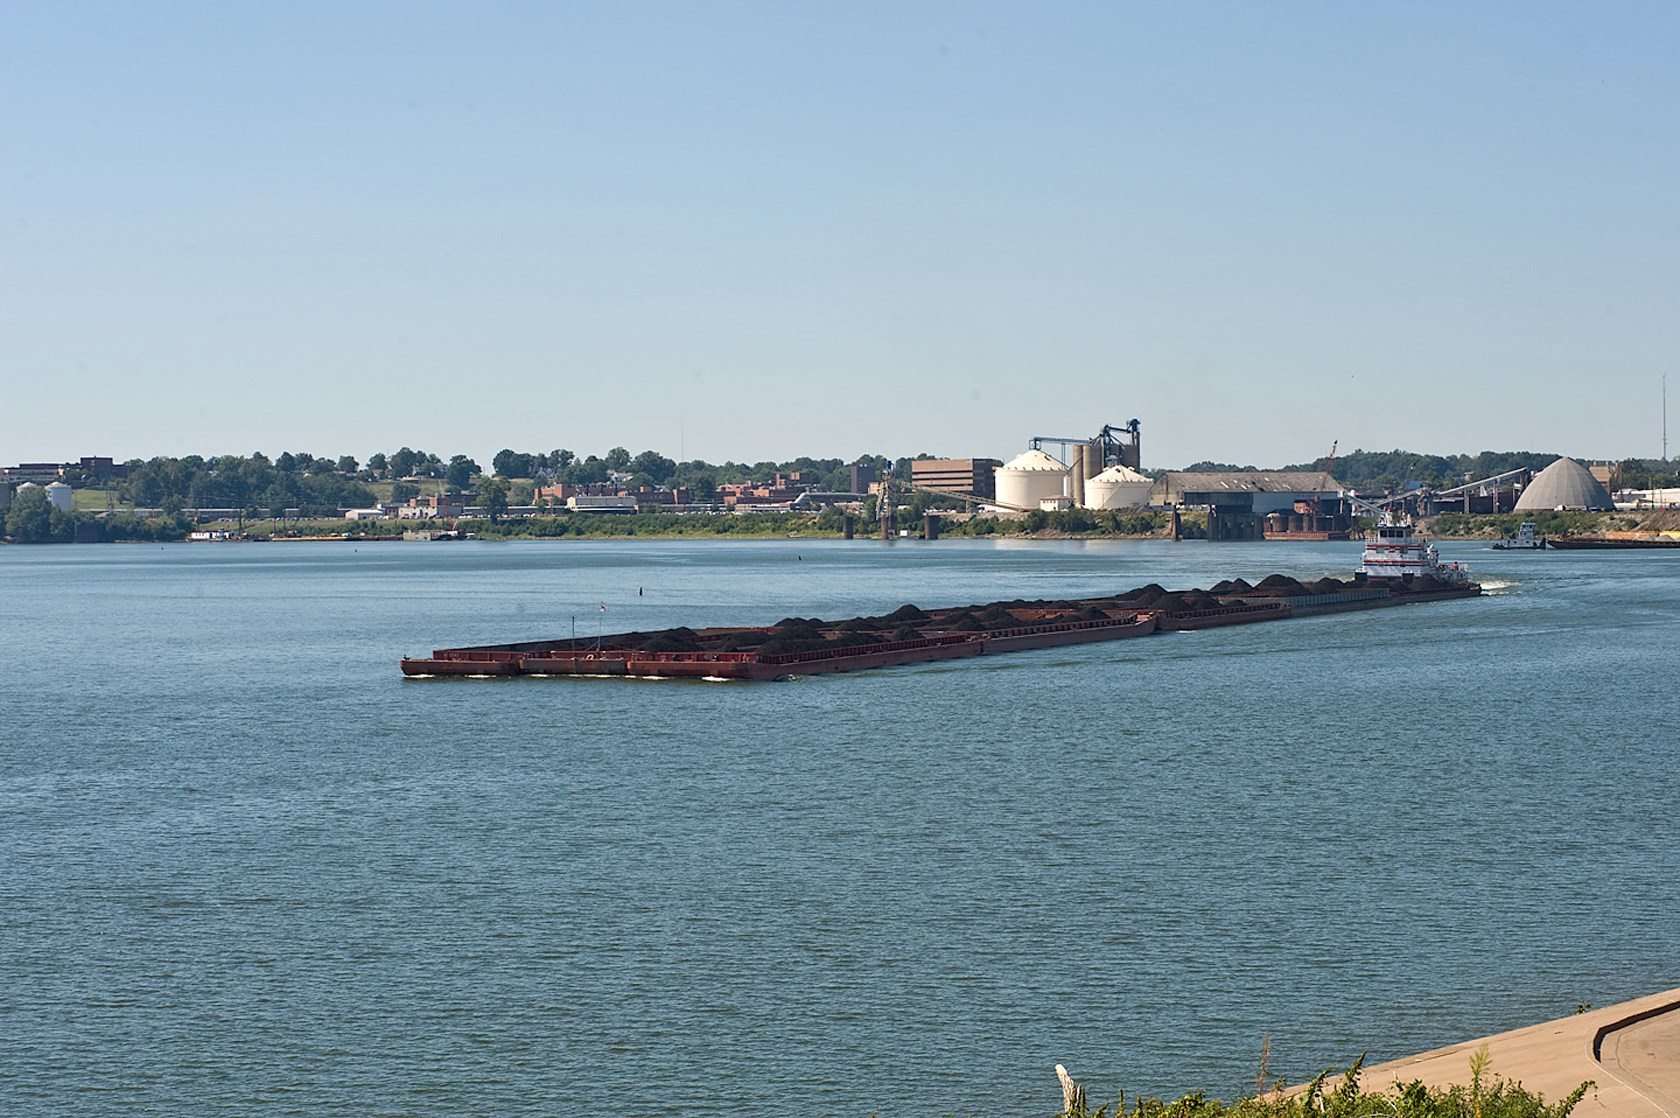 Barge Traffic on Ohio